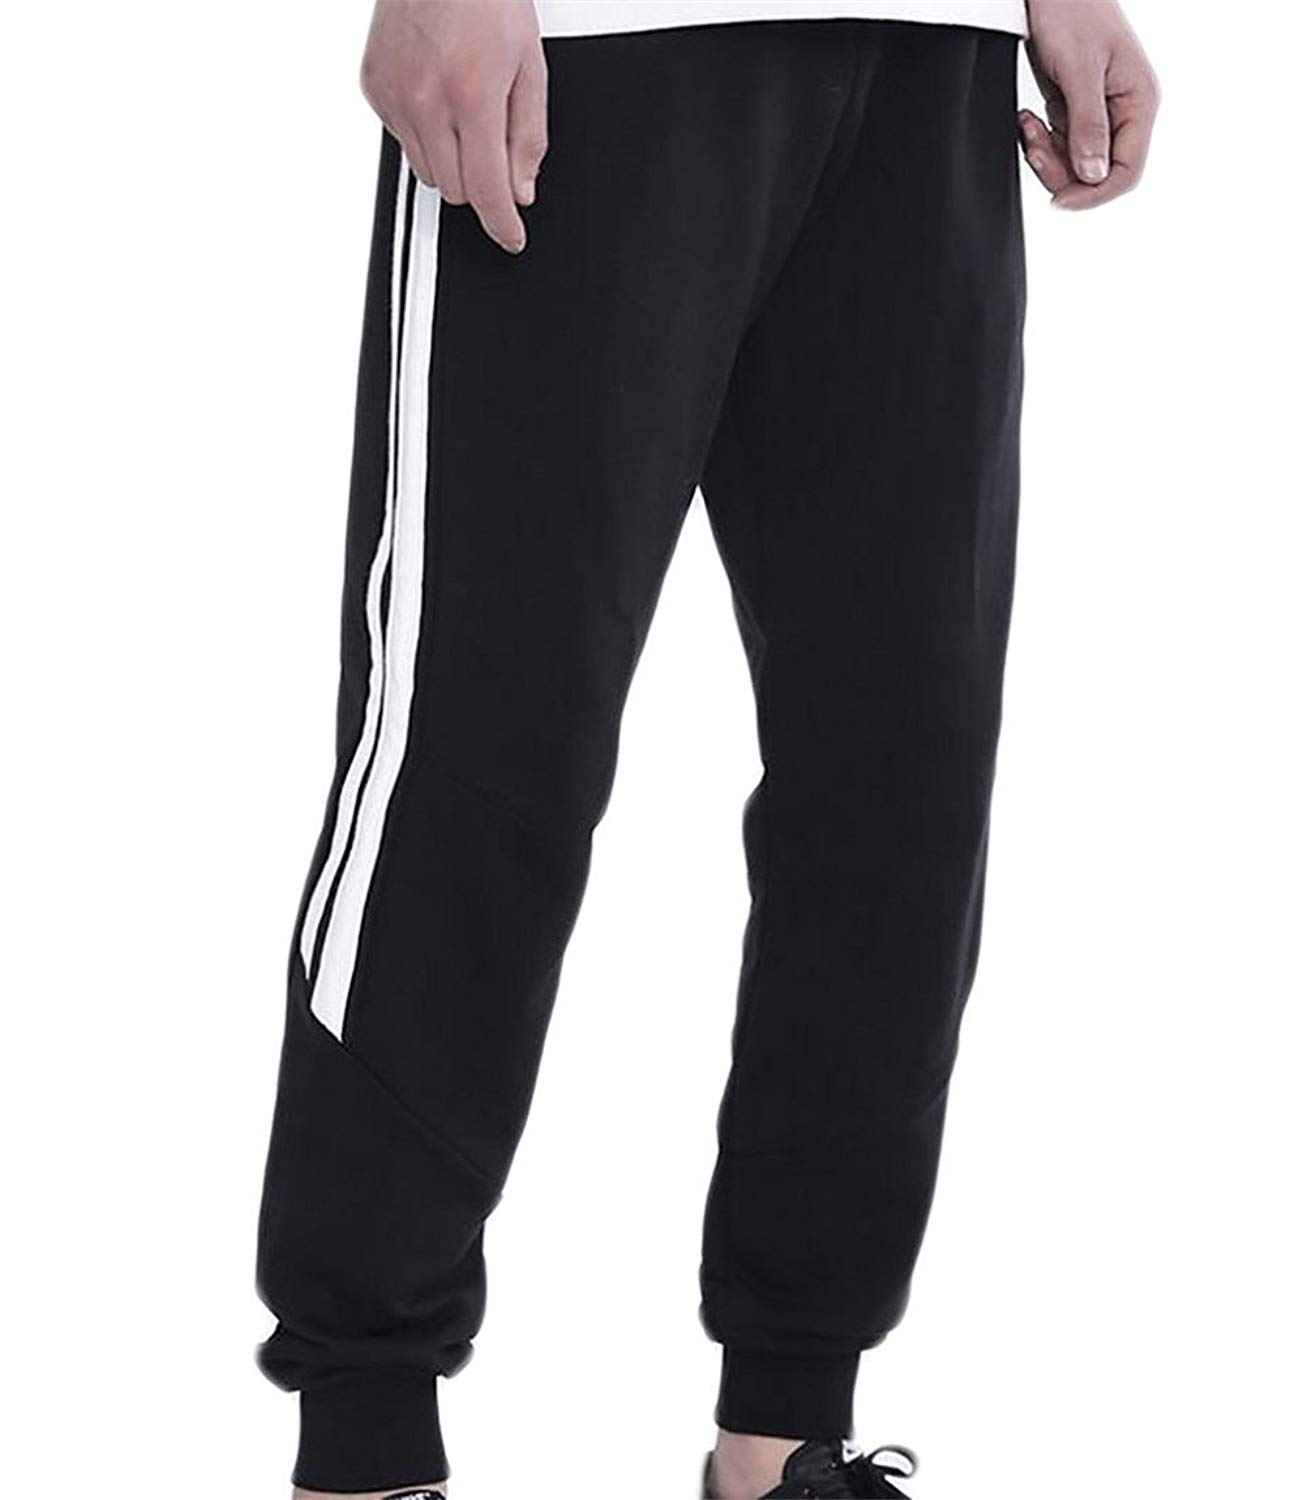 WSPLYSPJY Mens Casual Elastic Waist Solid Stretch Cargo Pants Trousers